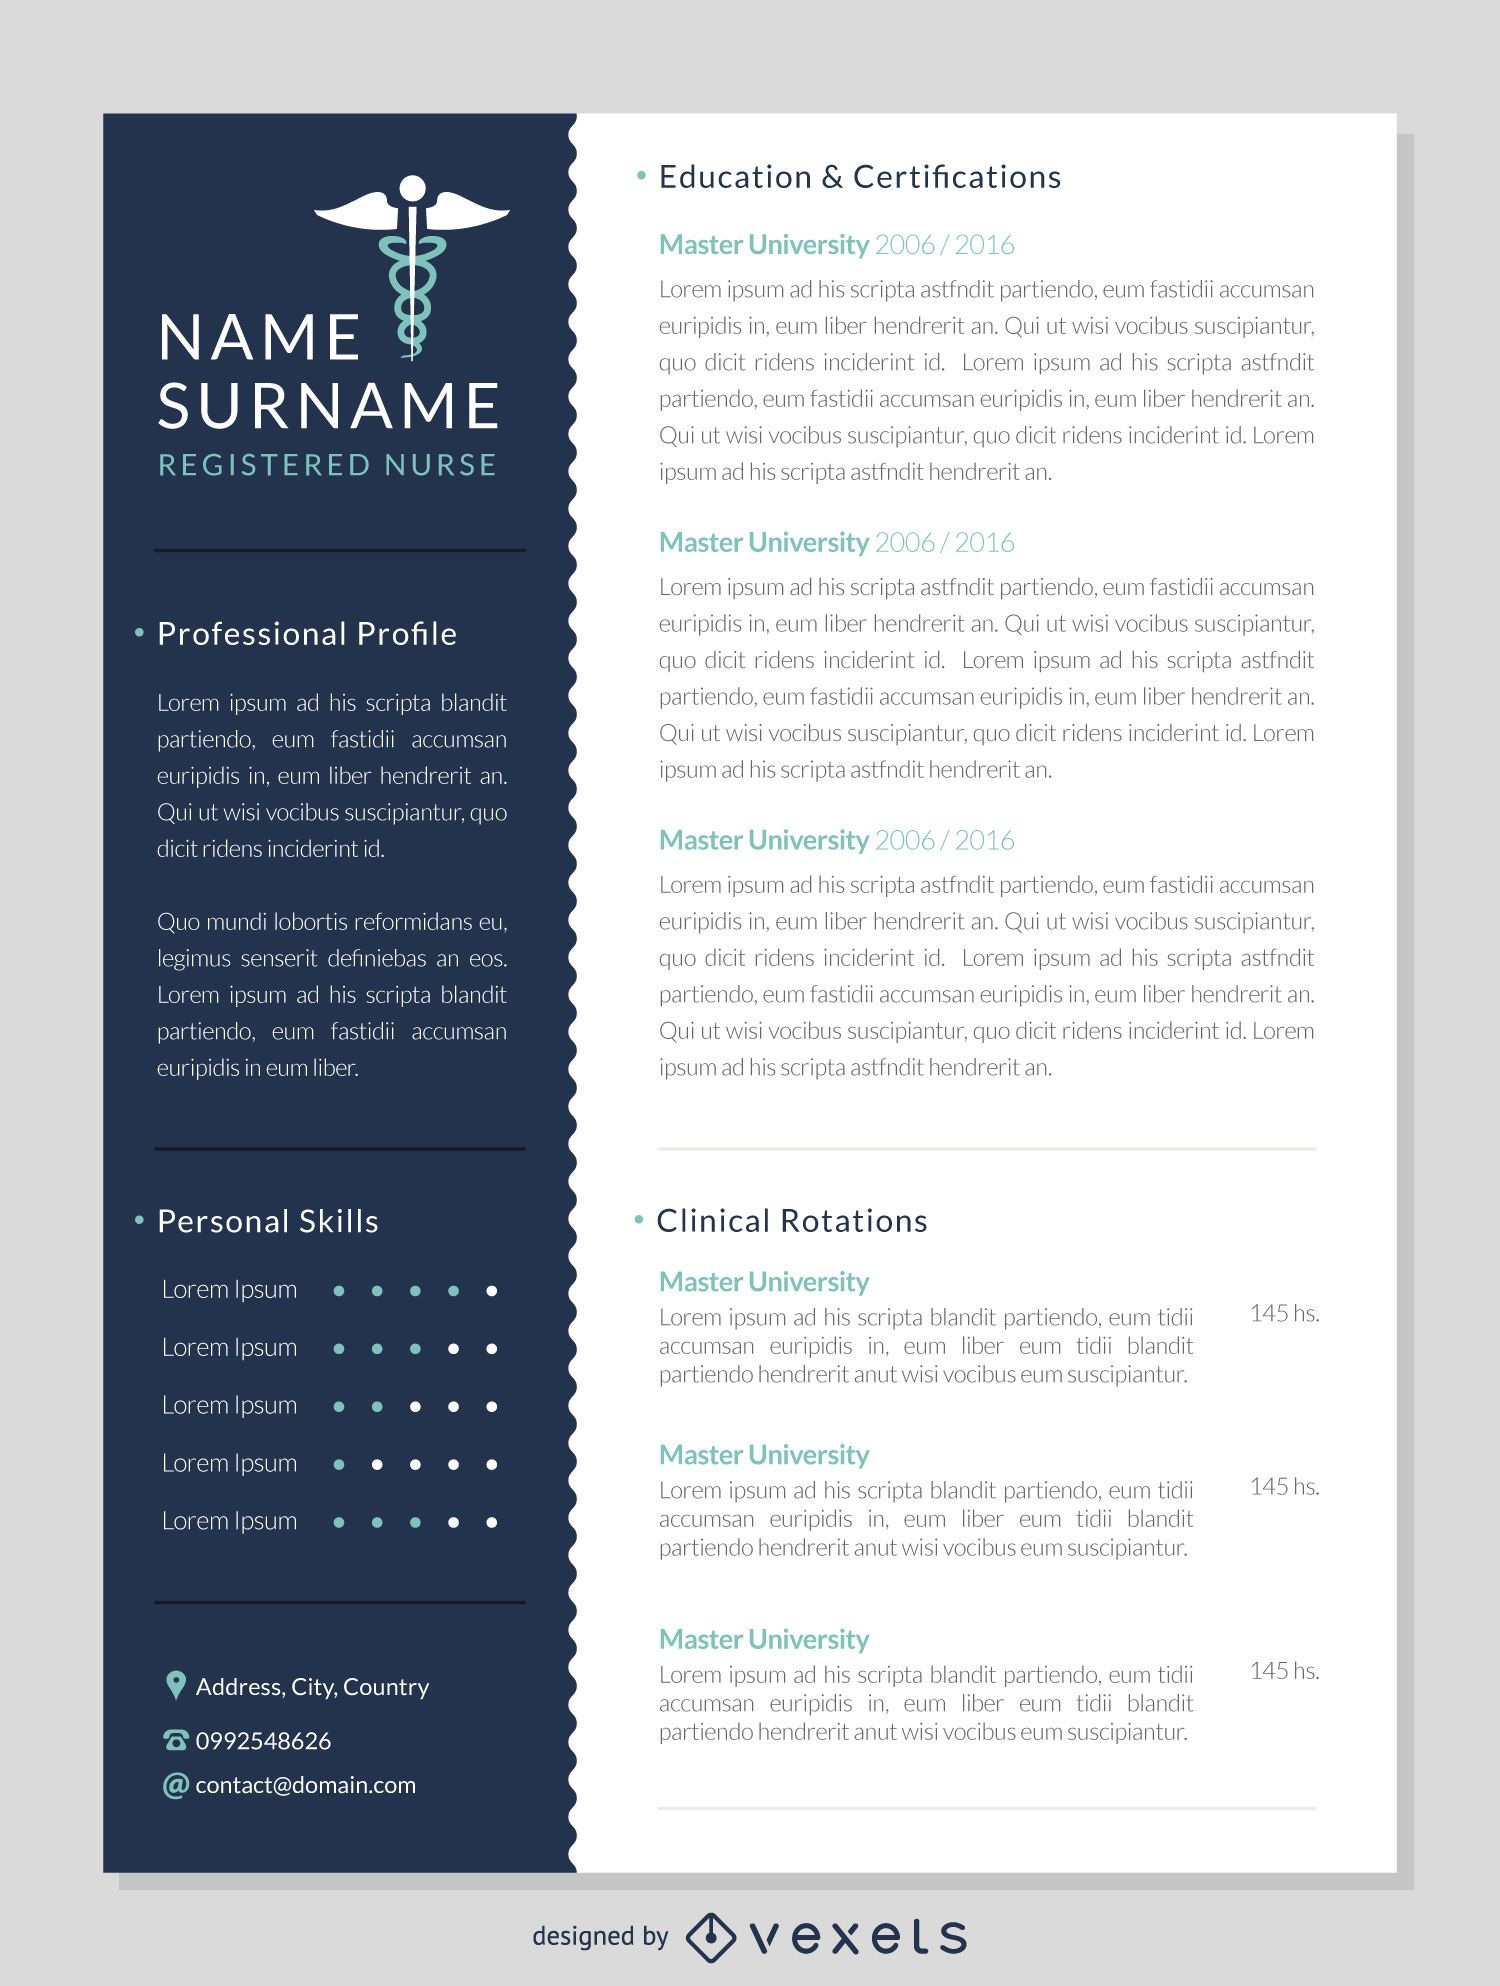 Nurse Resume Mockup Template. Download Large Image 1450x1920px  Psych Nurse Resume